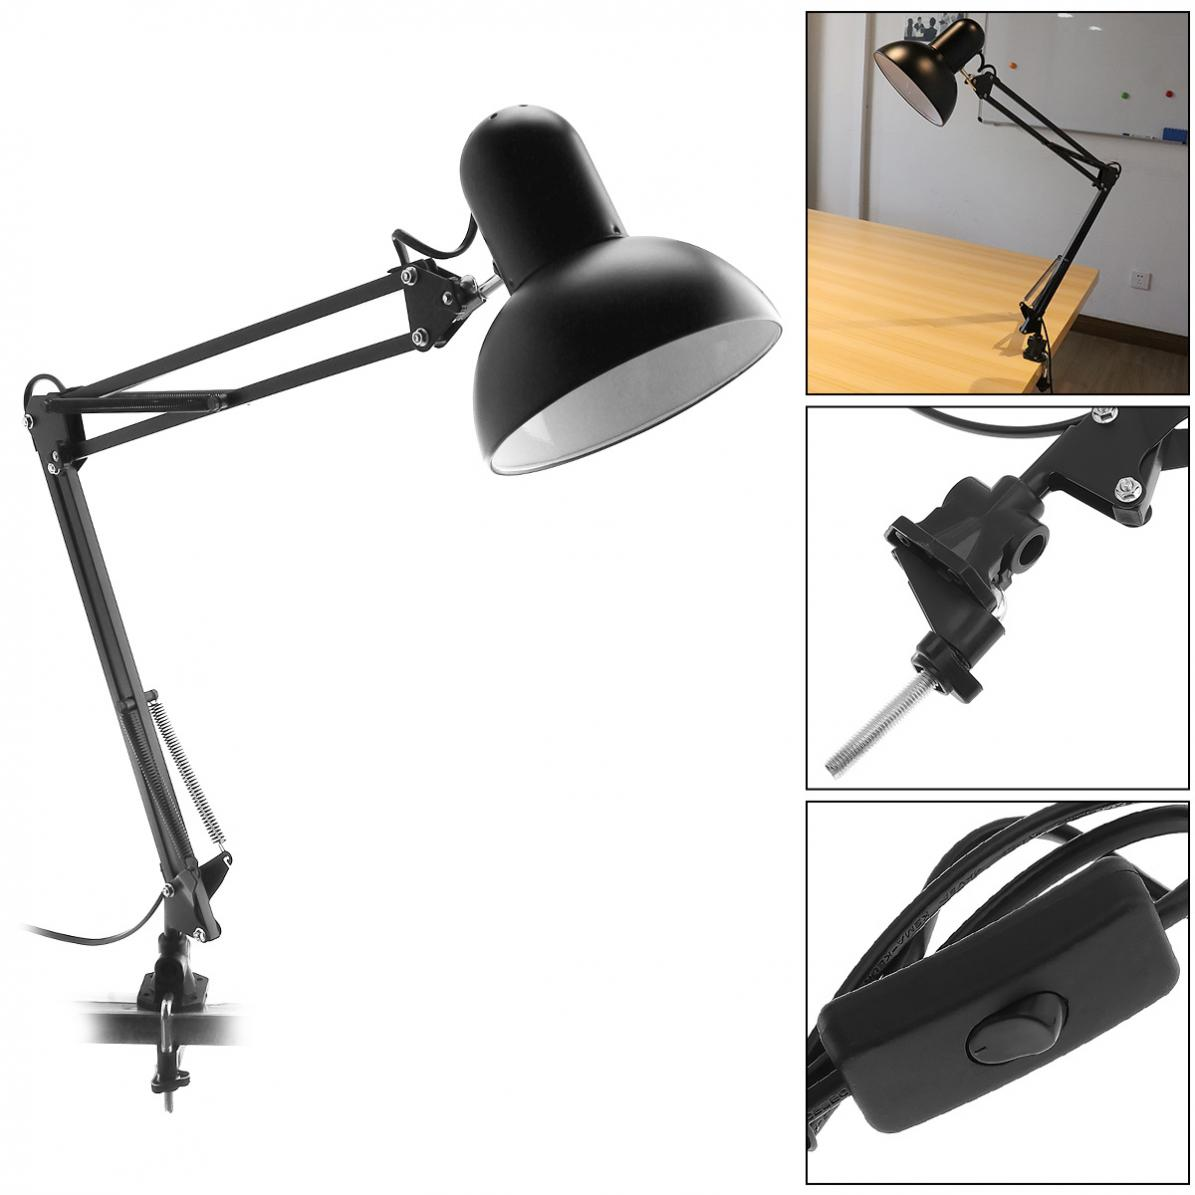 Flexible Desk Eye Protection Lamp with Rotatable Lamp Head And Clamp Mount Support 360 Degree Rotation for Office / Home